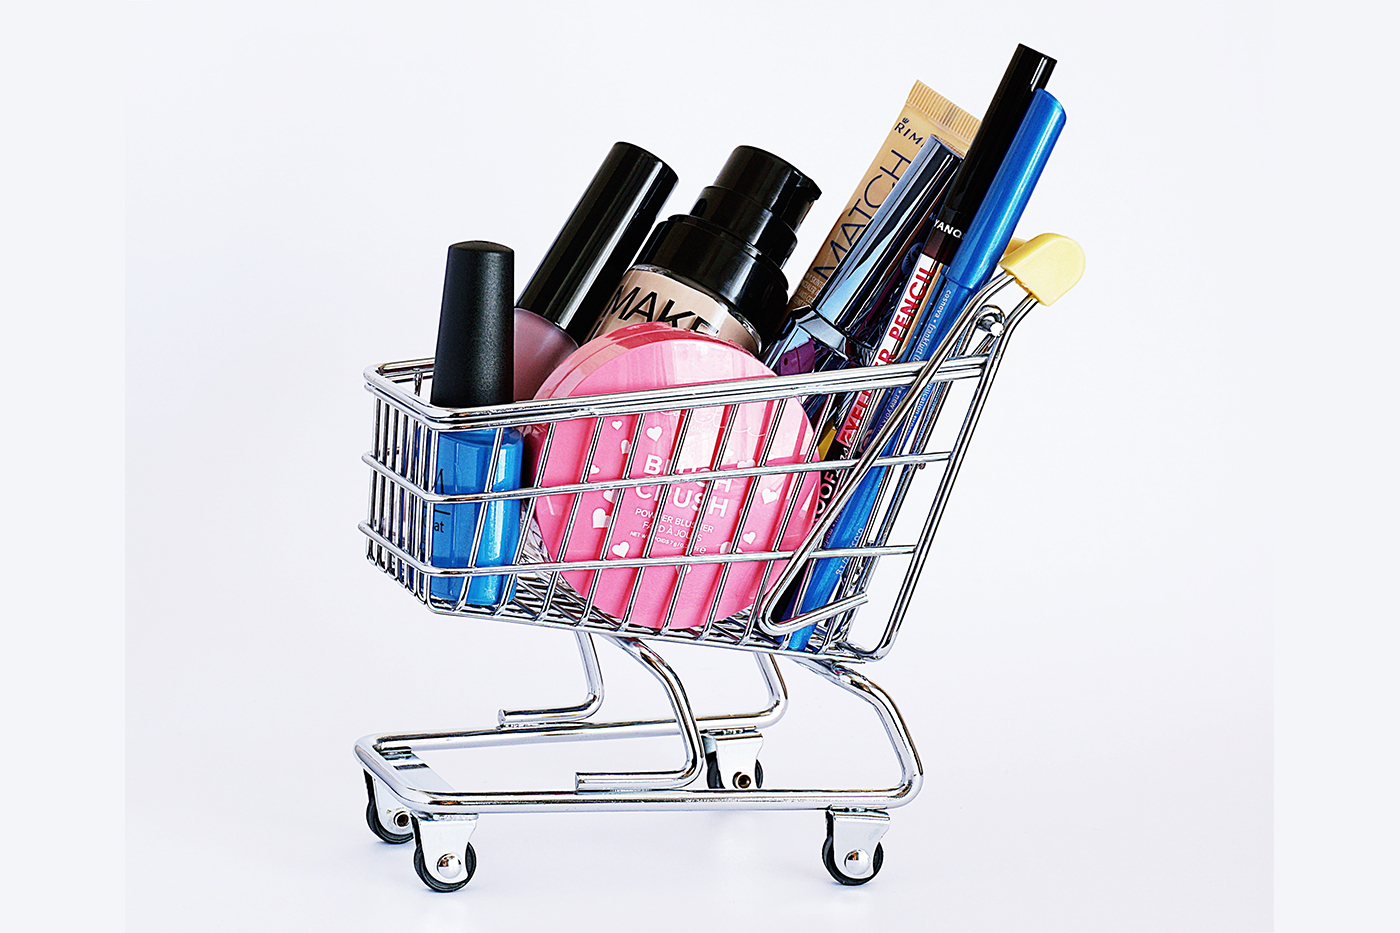 Double-digit growth in online beauty & fashion brands sales